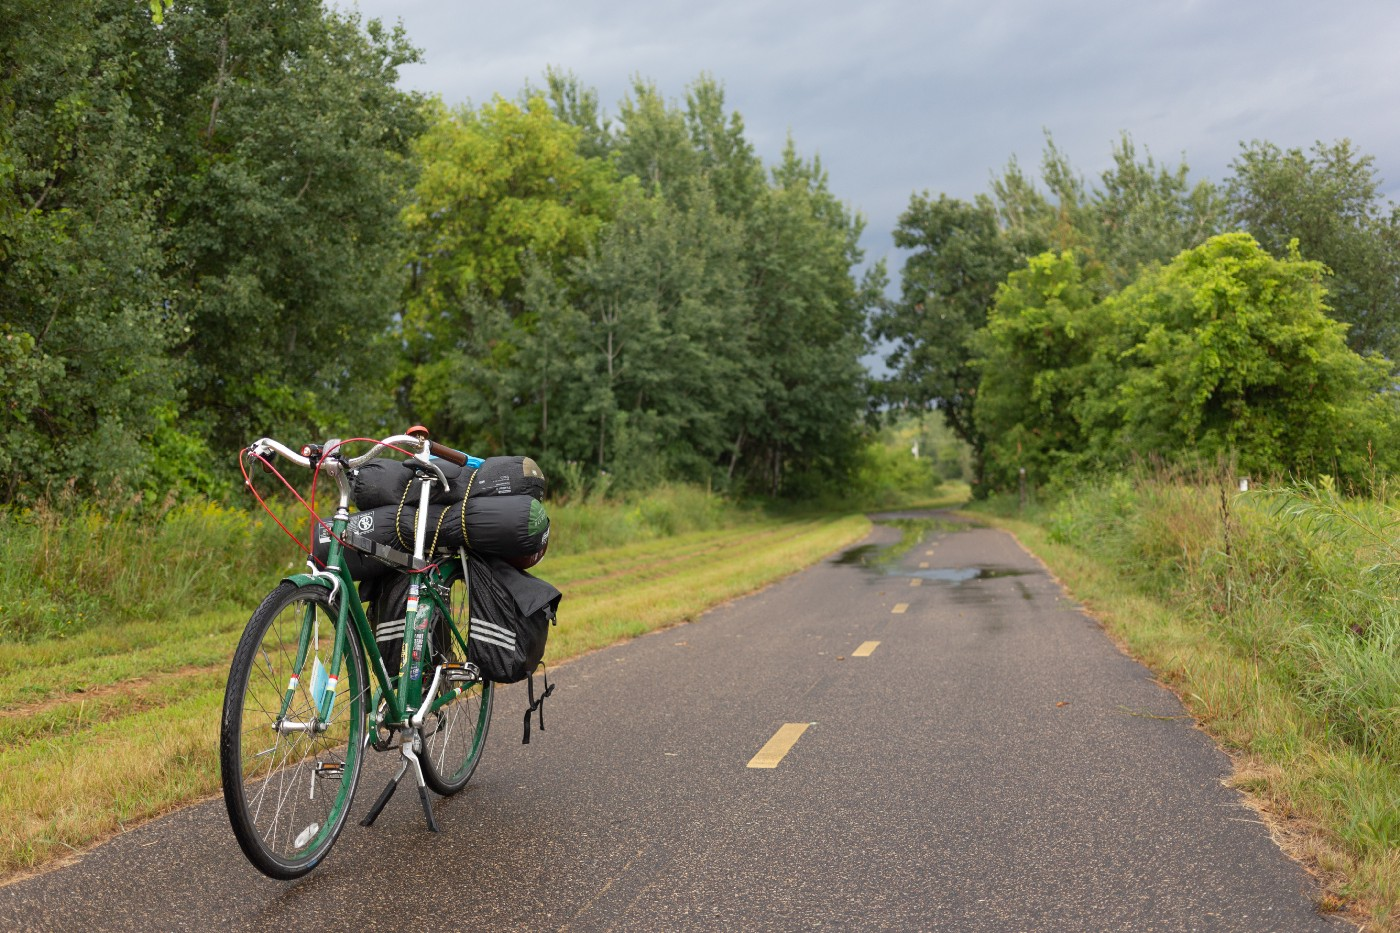 My bicycle is stopped on the Gateway State Trail in Washington County, MN.